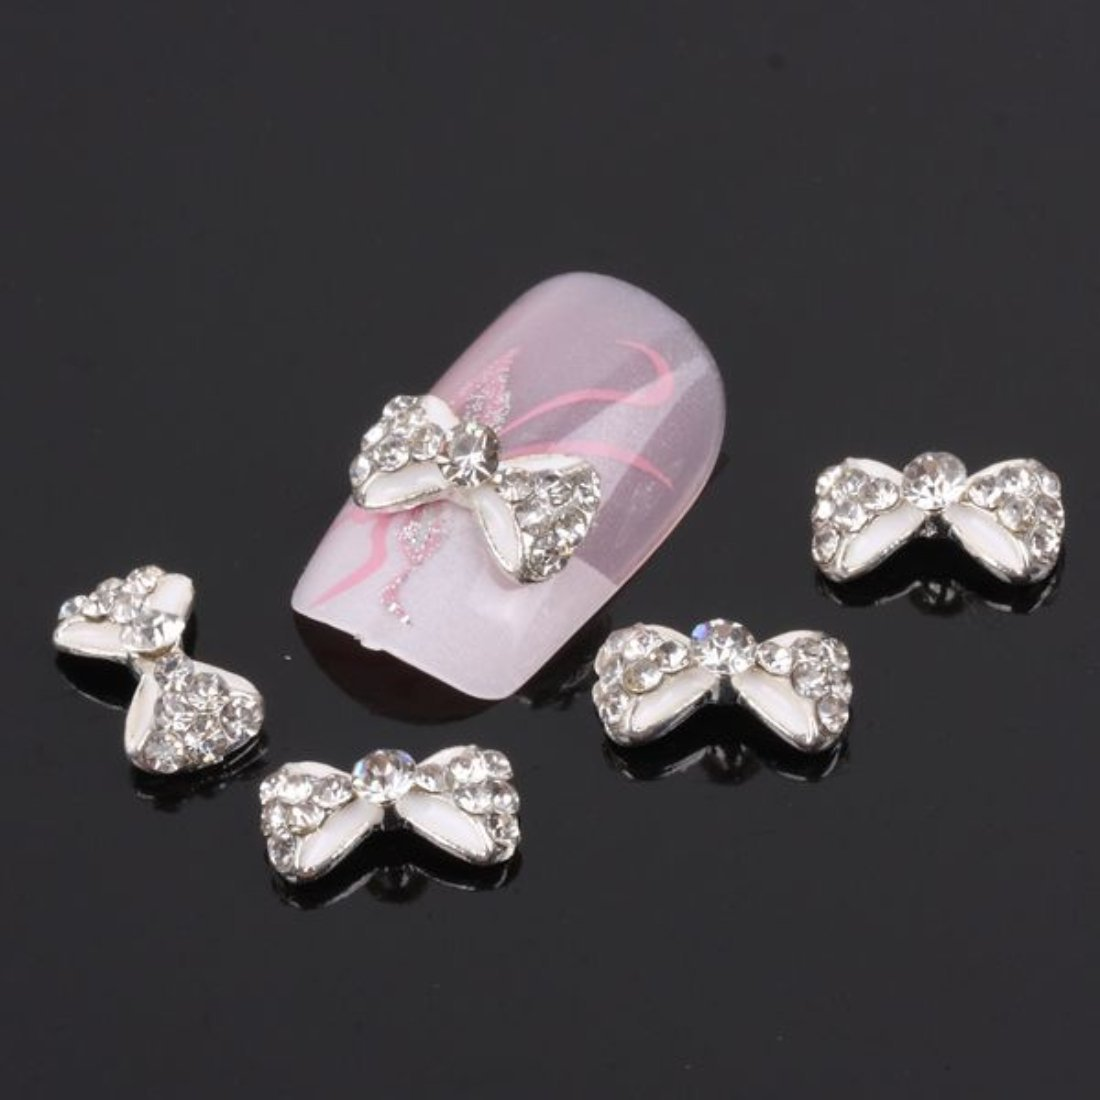 Nail Hall 10pcs 3D Bow Nail Art Bling Rhinestones Tips Diy Nail Decoration